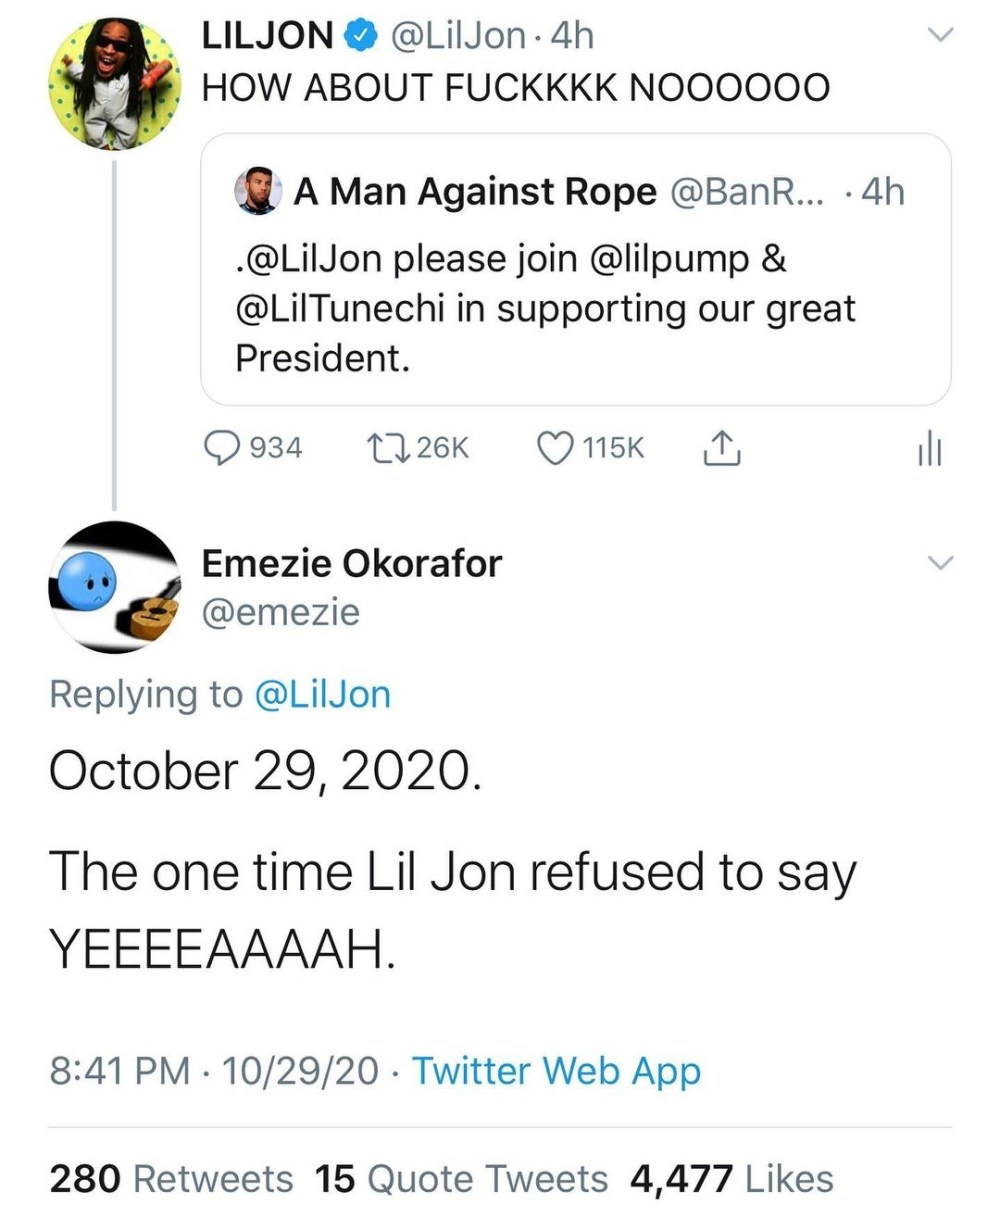 """Lil Jon took over the game by creating his own sound. The 2003-2006 period saw him create some huge hits, both for himself and others. There is a current trend of rappers endorsing Donald Trump for president, but Lil Jon does his own thing, telling a fan """"F*CKKKK NOOOOOO,"""" when asked if he'd support Trump."""